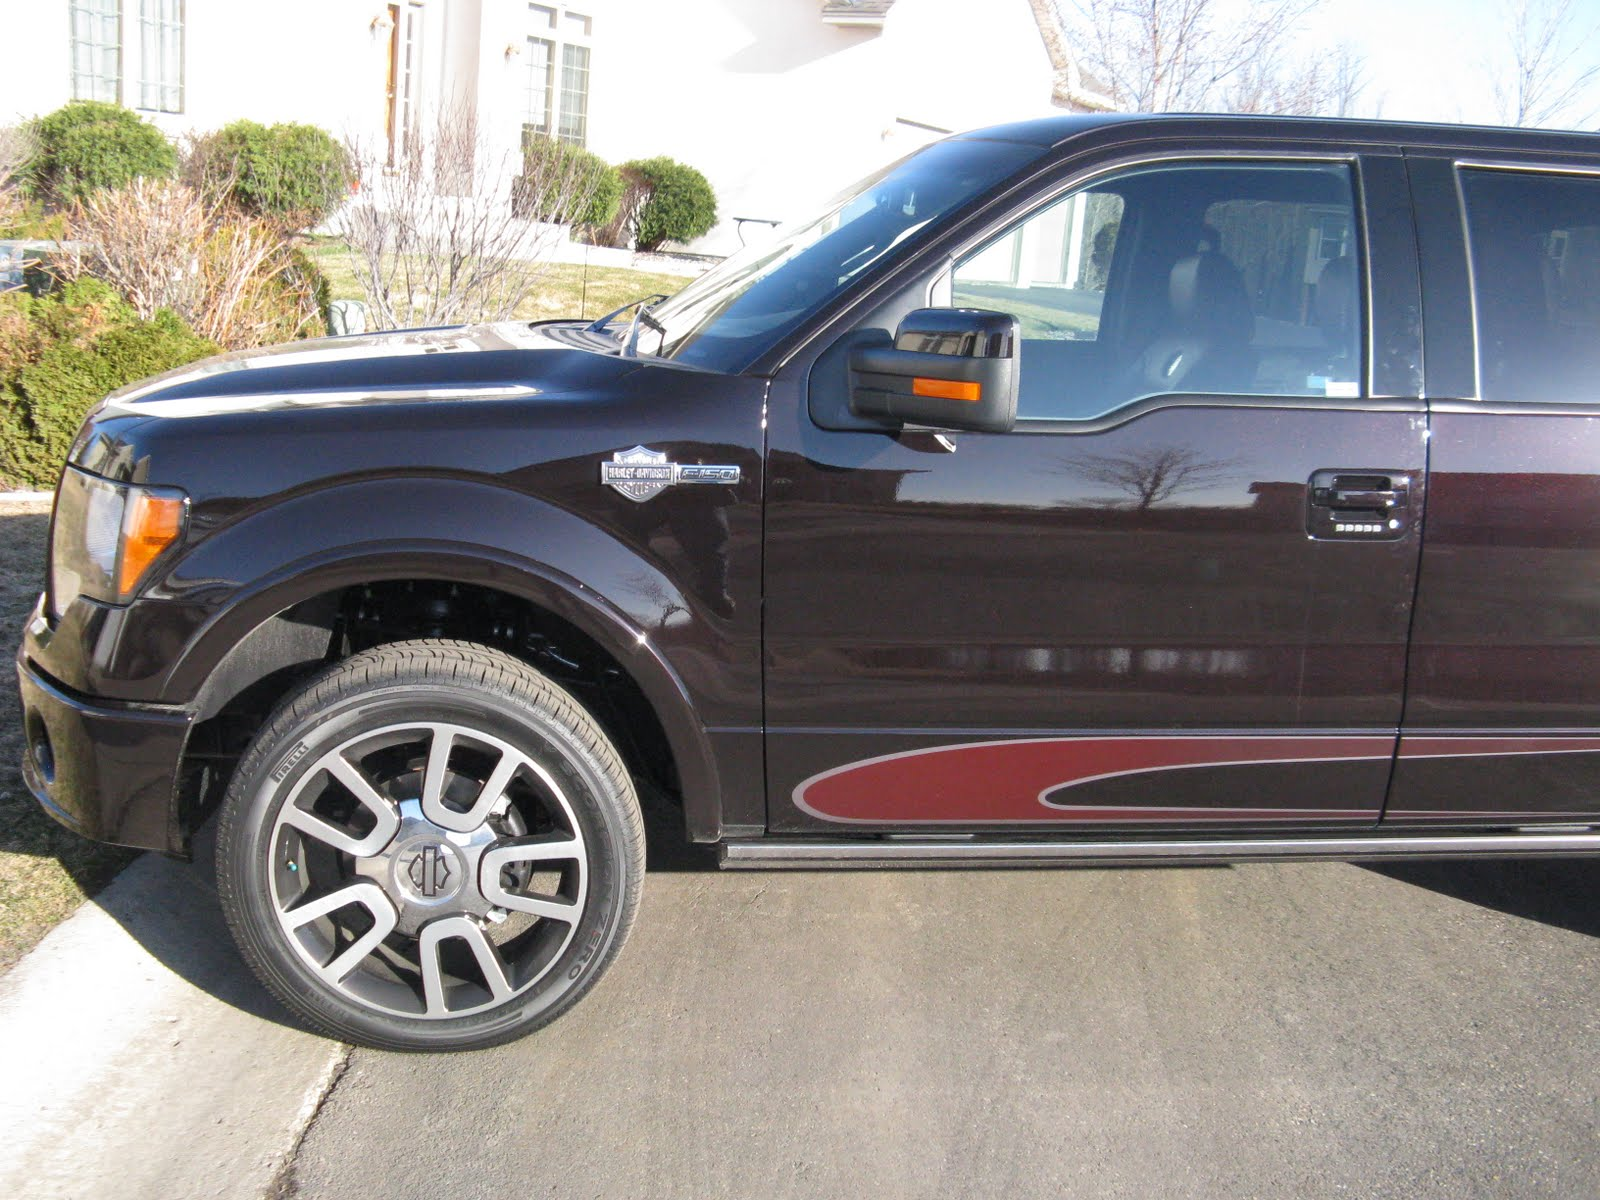 This Is The 2010 Ford F150 Harley Davidson Pick Up What A Beautiful Truck Color Lava Red Comes With Just About Everything In Tricked Out